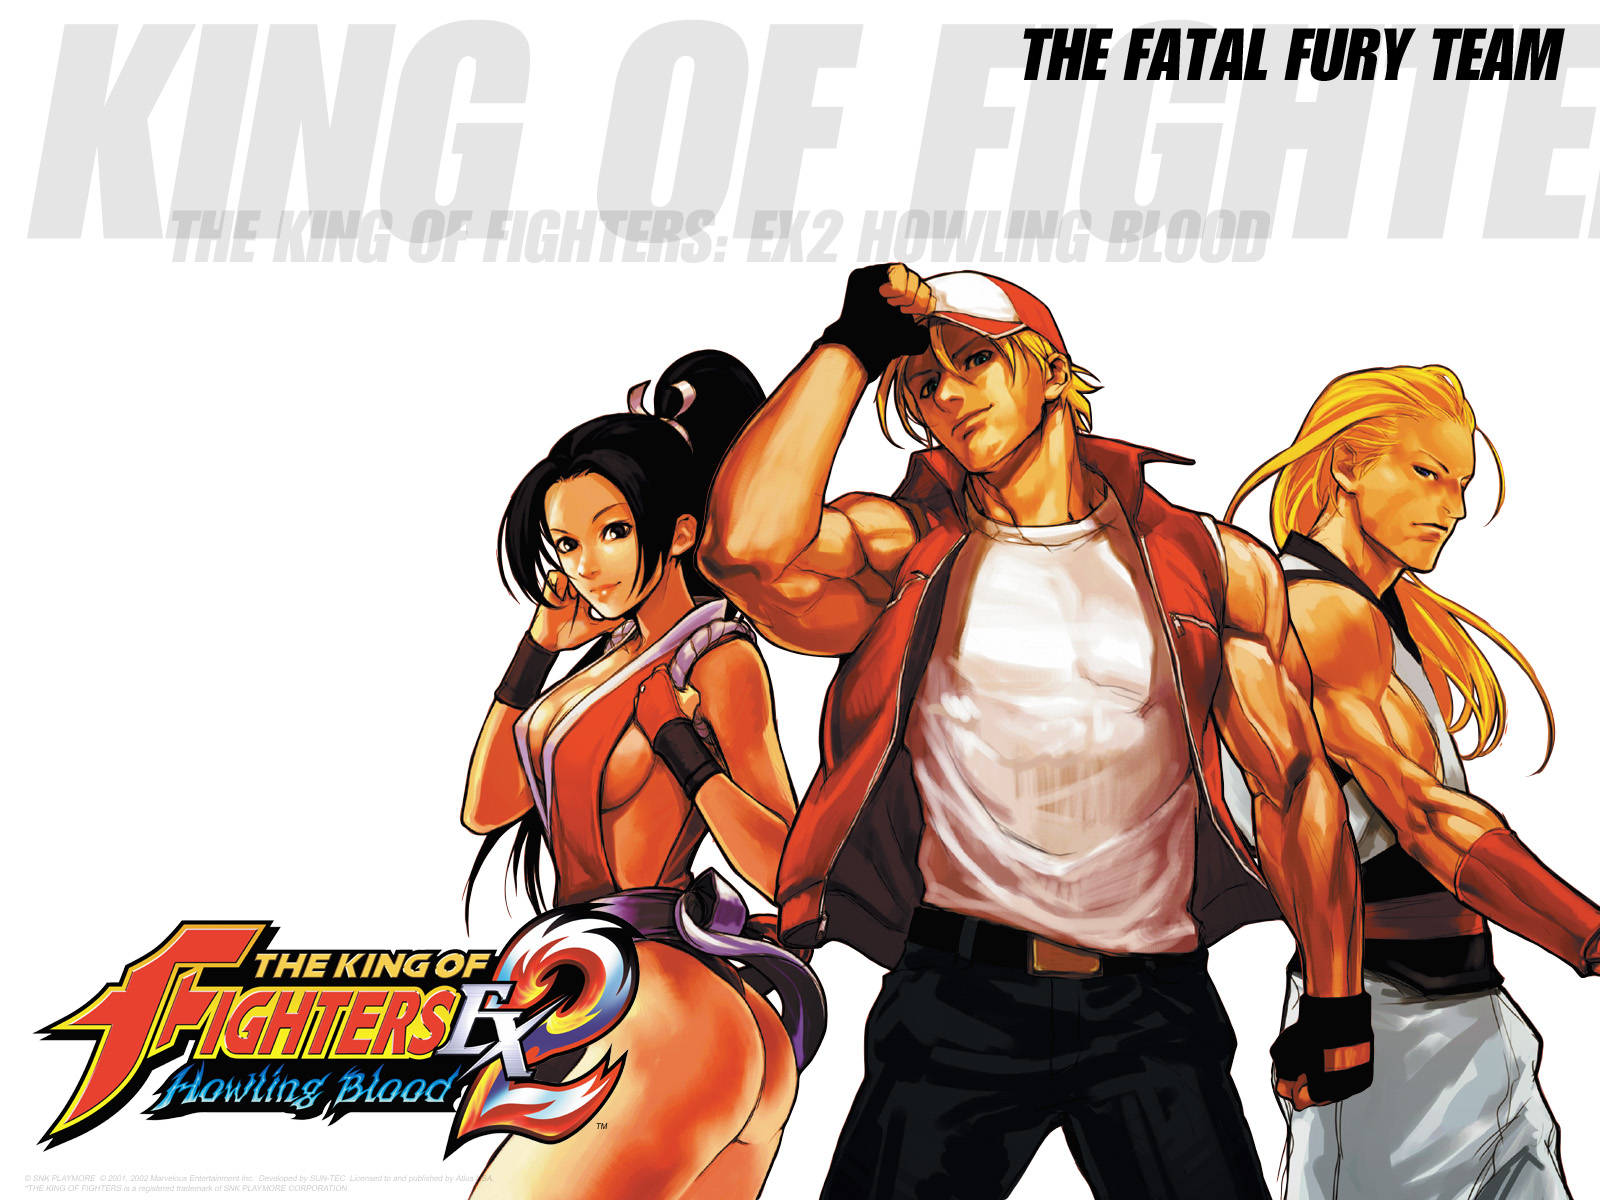 http://2.bp.blogspot.com/-Sn_0sFgcuL4/TscbwdKf-VI/AAAAAAAAAlQ/L9lCYWMGiNw/s1600/king-of-fighters-wallpaper-2-717460.jpg